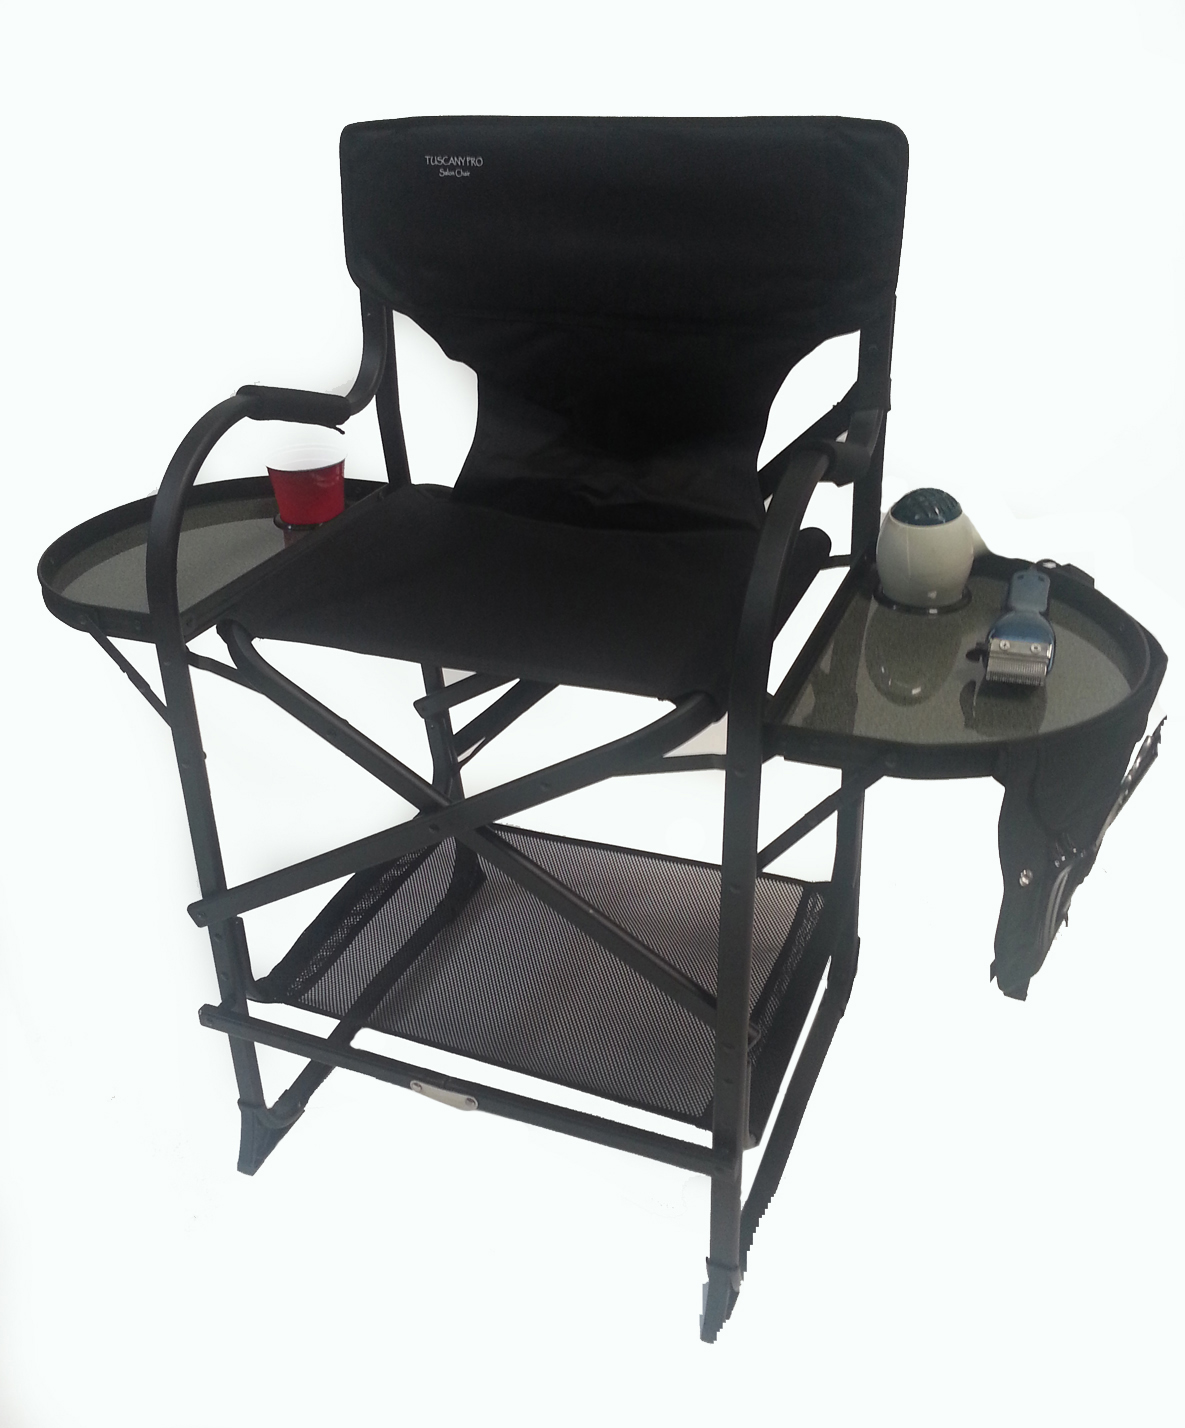 Make Up Studio Chairs Mid Size Salon Makeup Chair By Pacific Imports